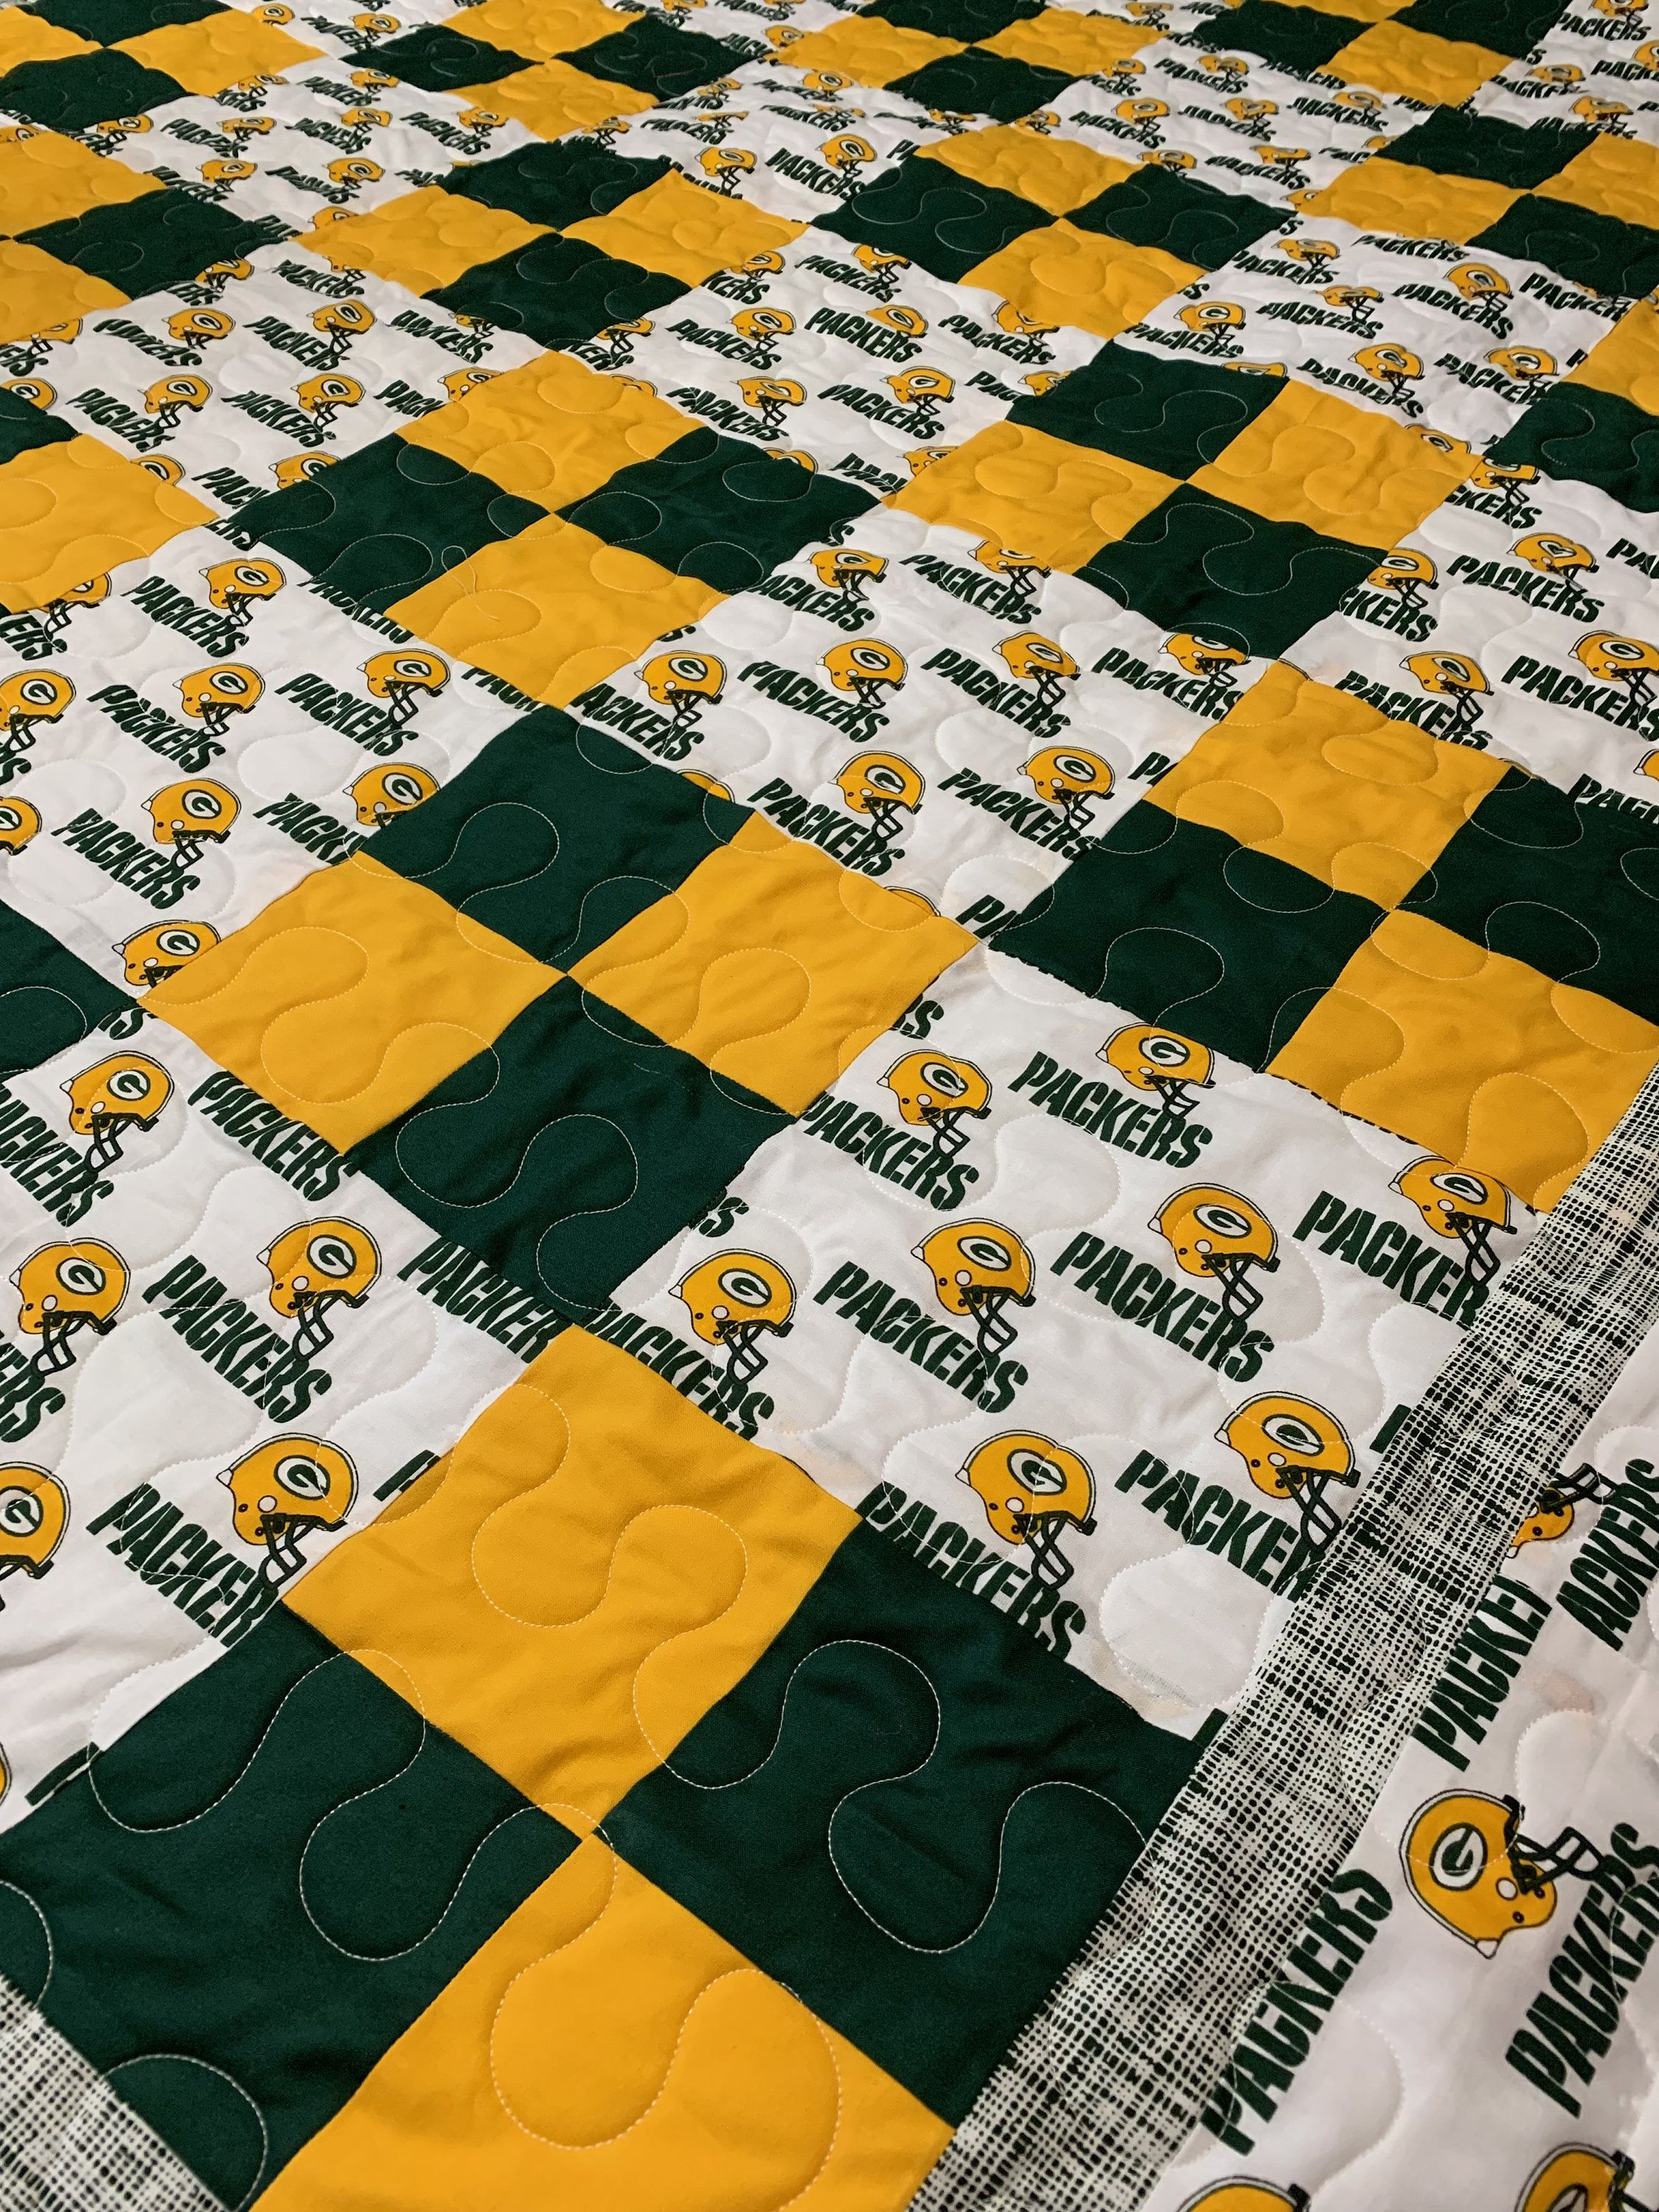 Green Bay Packers Handmade Quilt Sports Quilts Cute Quilts Green Bay Packers Crafts